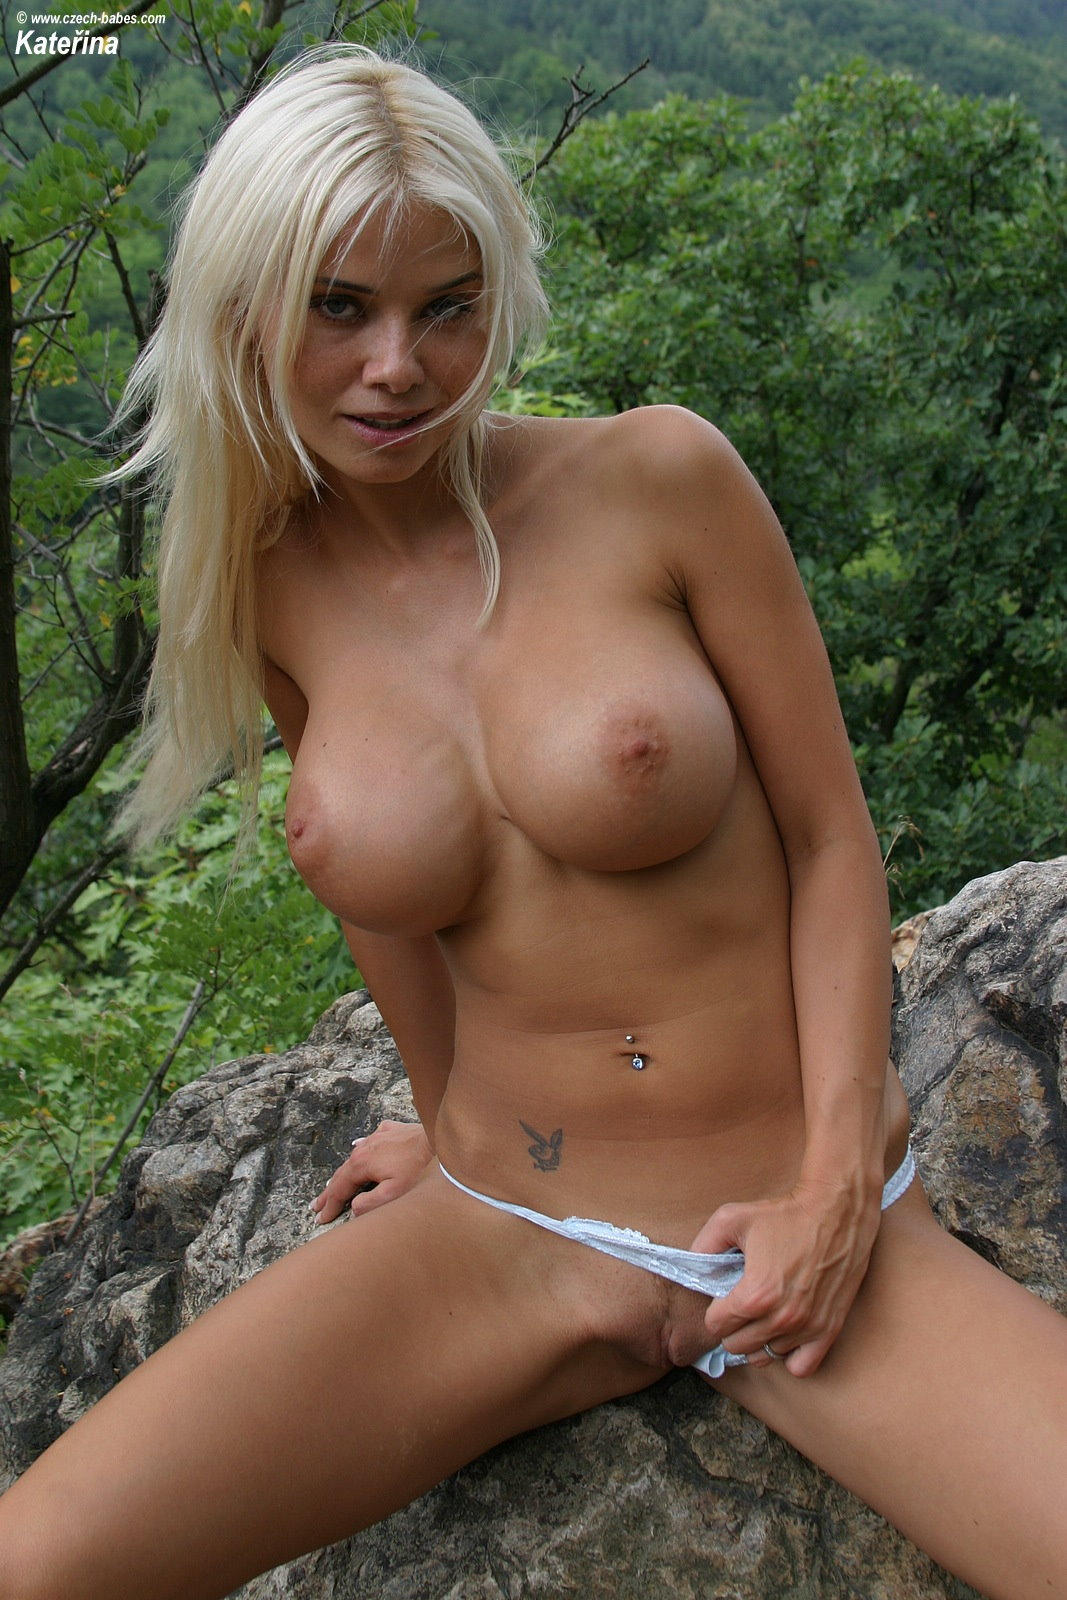 katerina-nude-mountain-lingerie-huge-tits-blonde-14